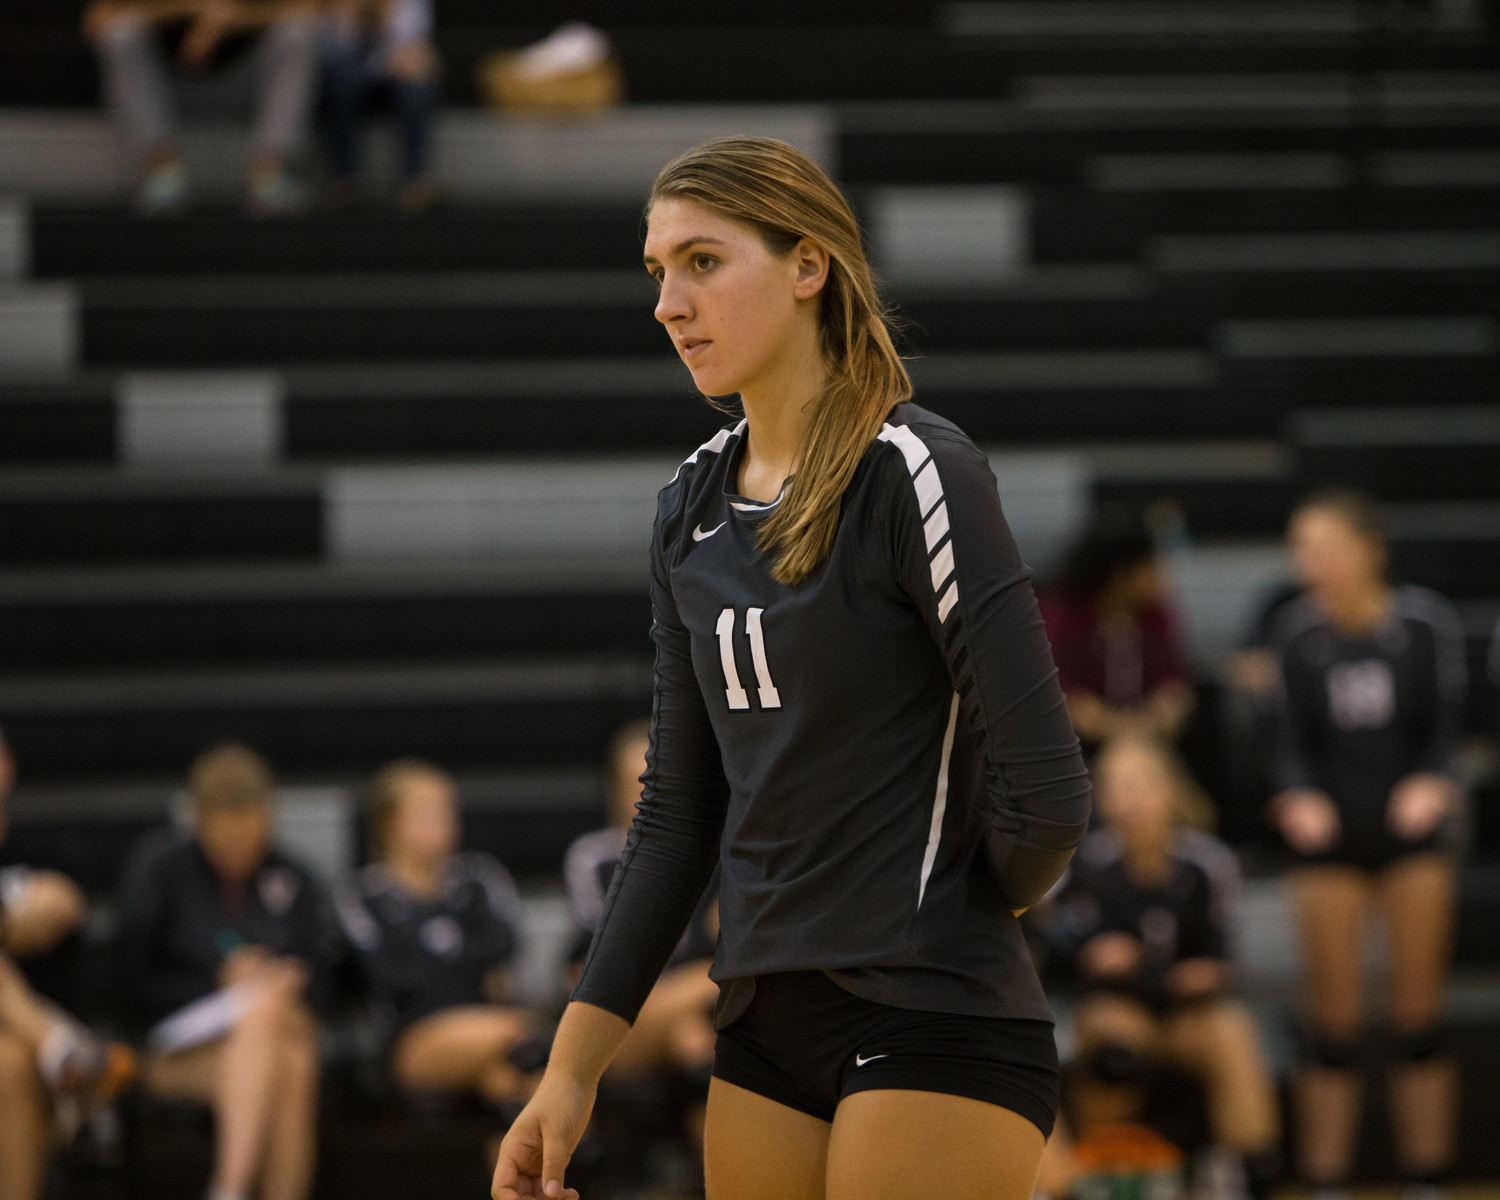 Vandegrift Vipers senior outside hitter Simone Priebe (11) in action during Leander ISD's annual Volleypalooza tournament at Vandegrift High School in Austin, Texas, on Thursday, August 24, 2017.